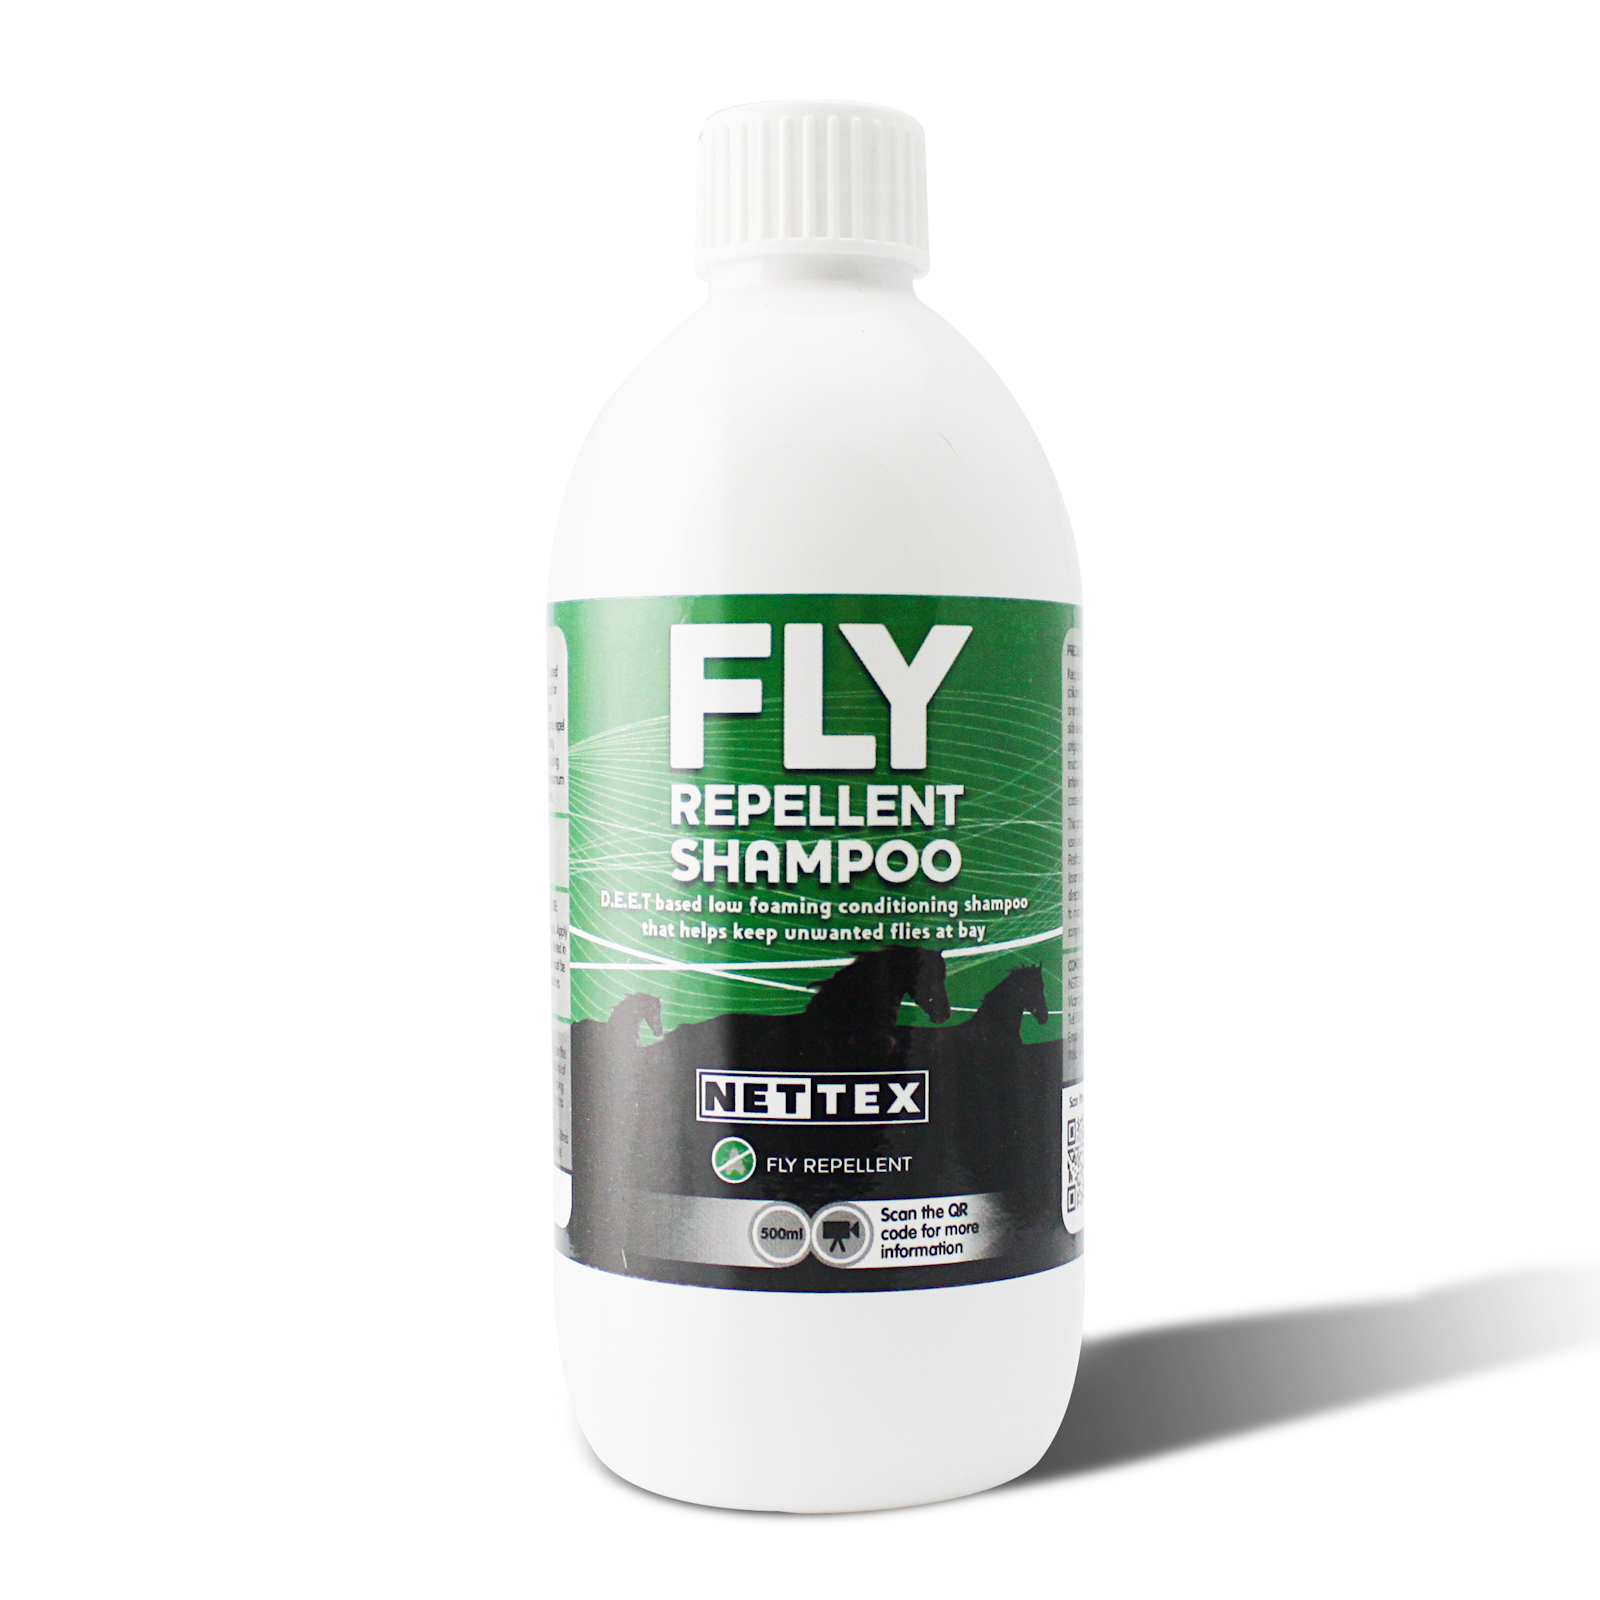 Nettex Fly Repellent Shampoo 500 ml